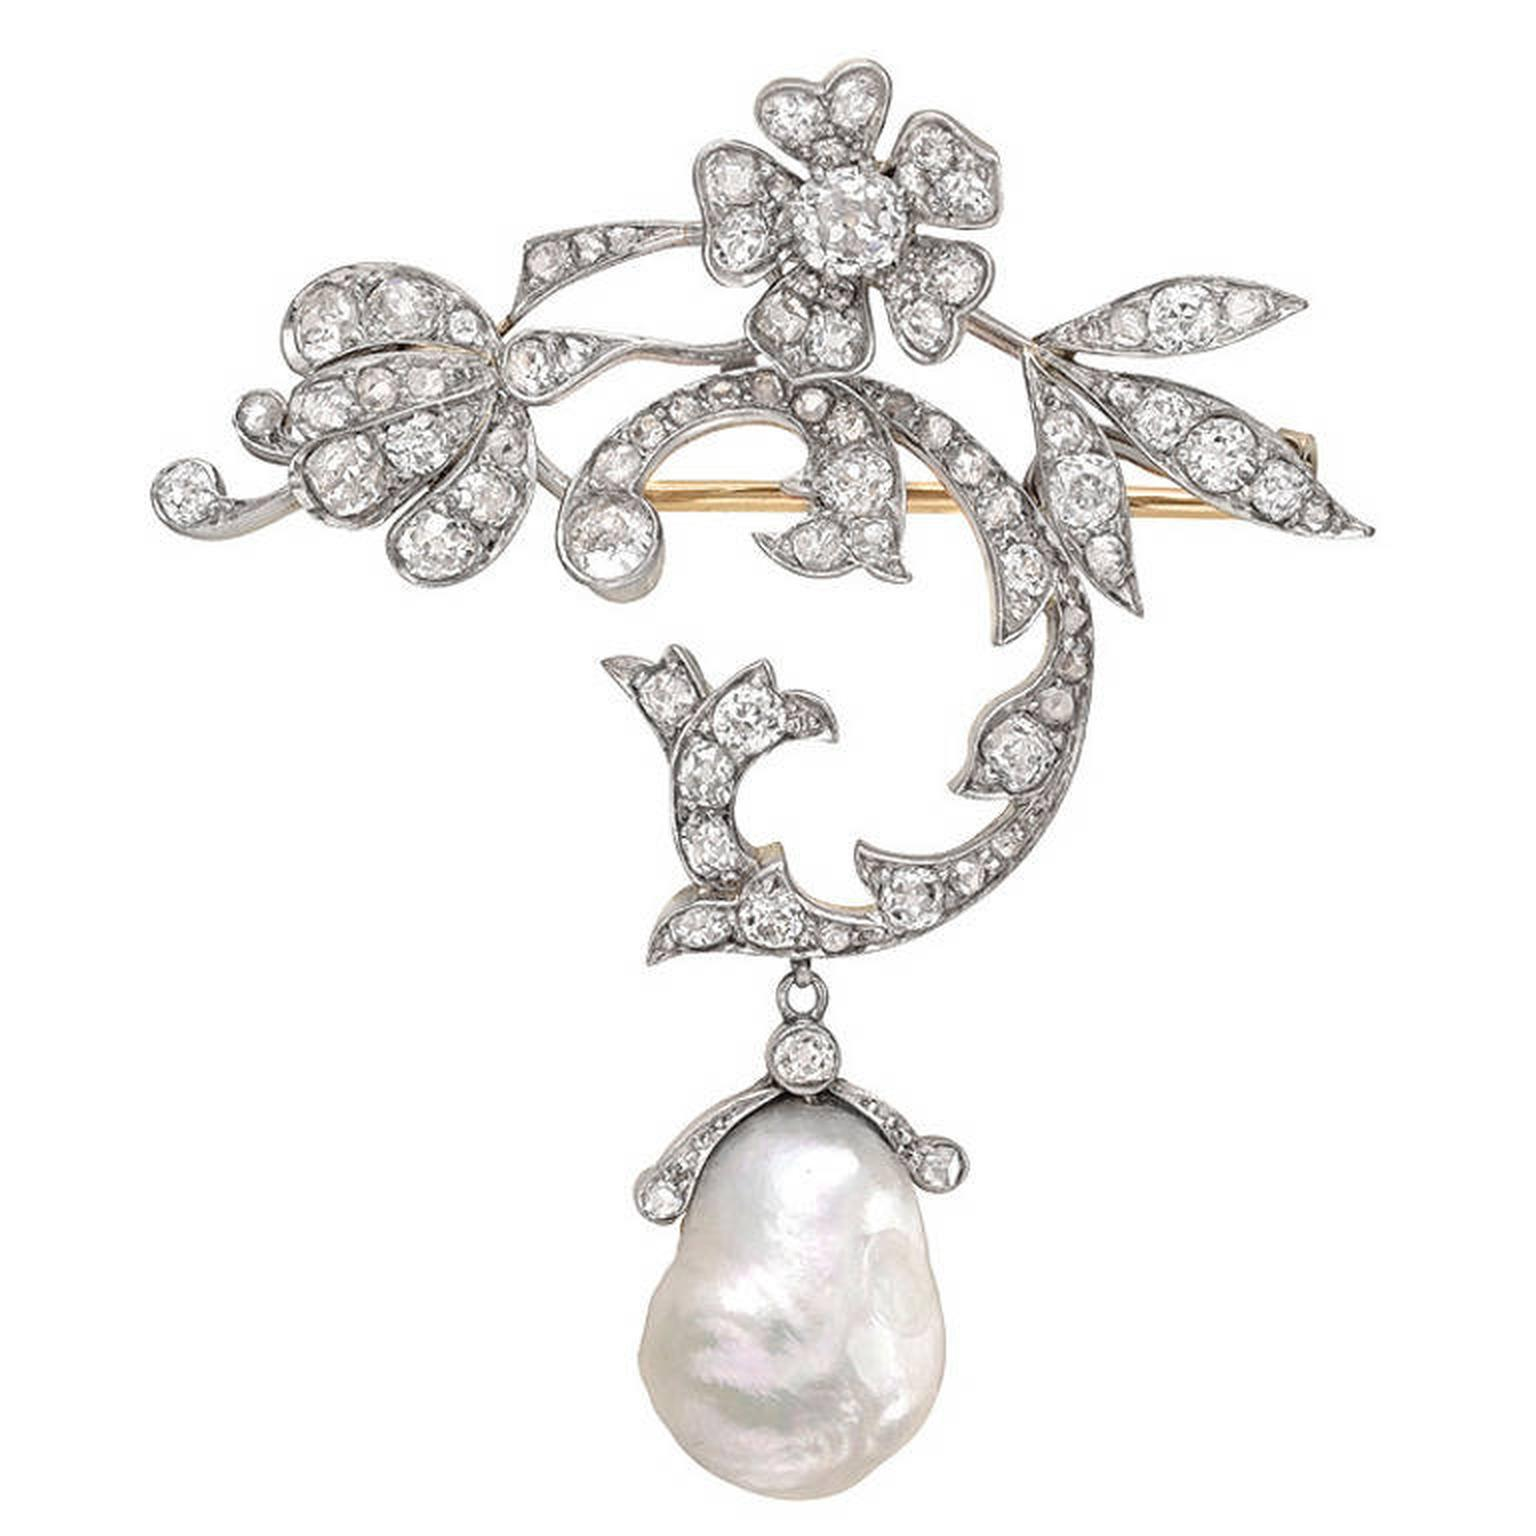 Betteridge Edwardian brooch with a Baroque pearl